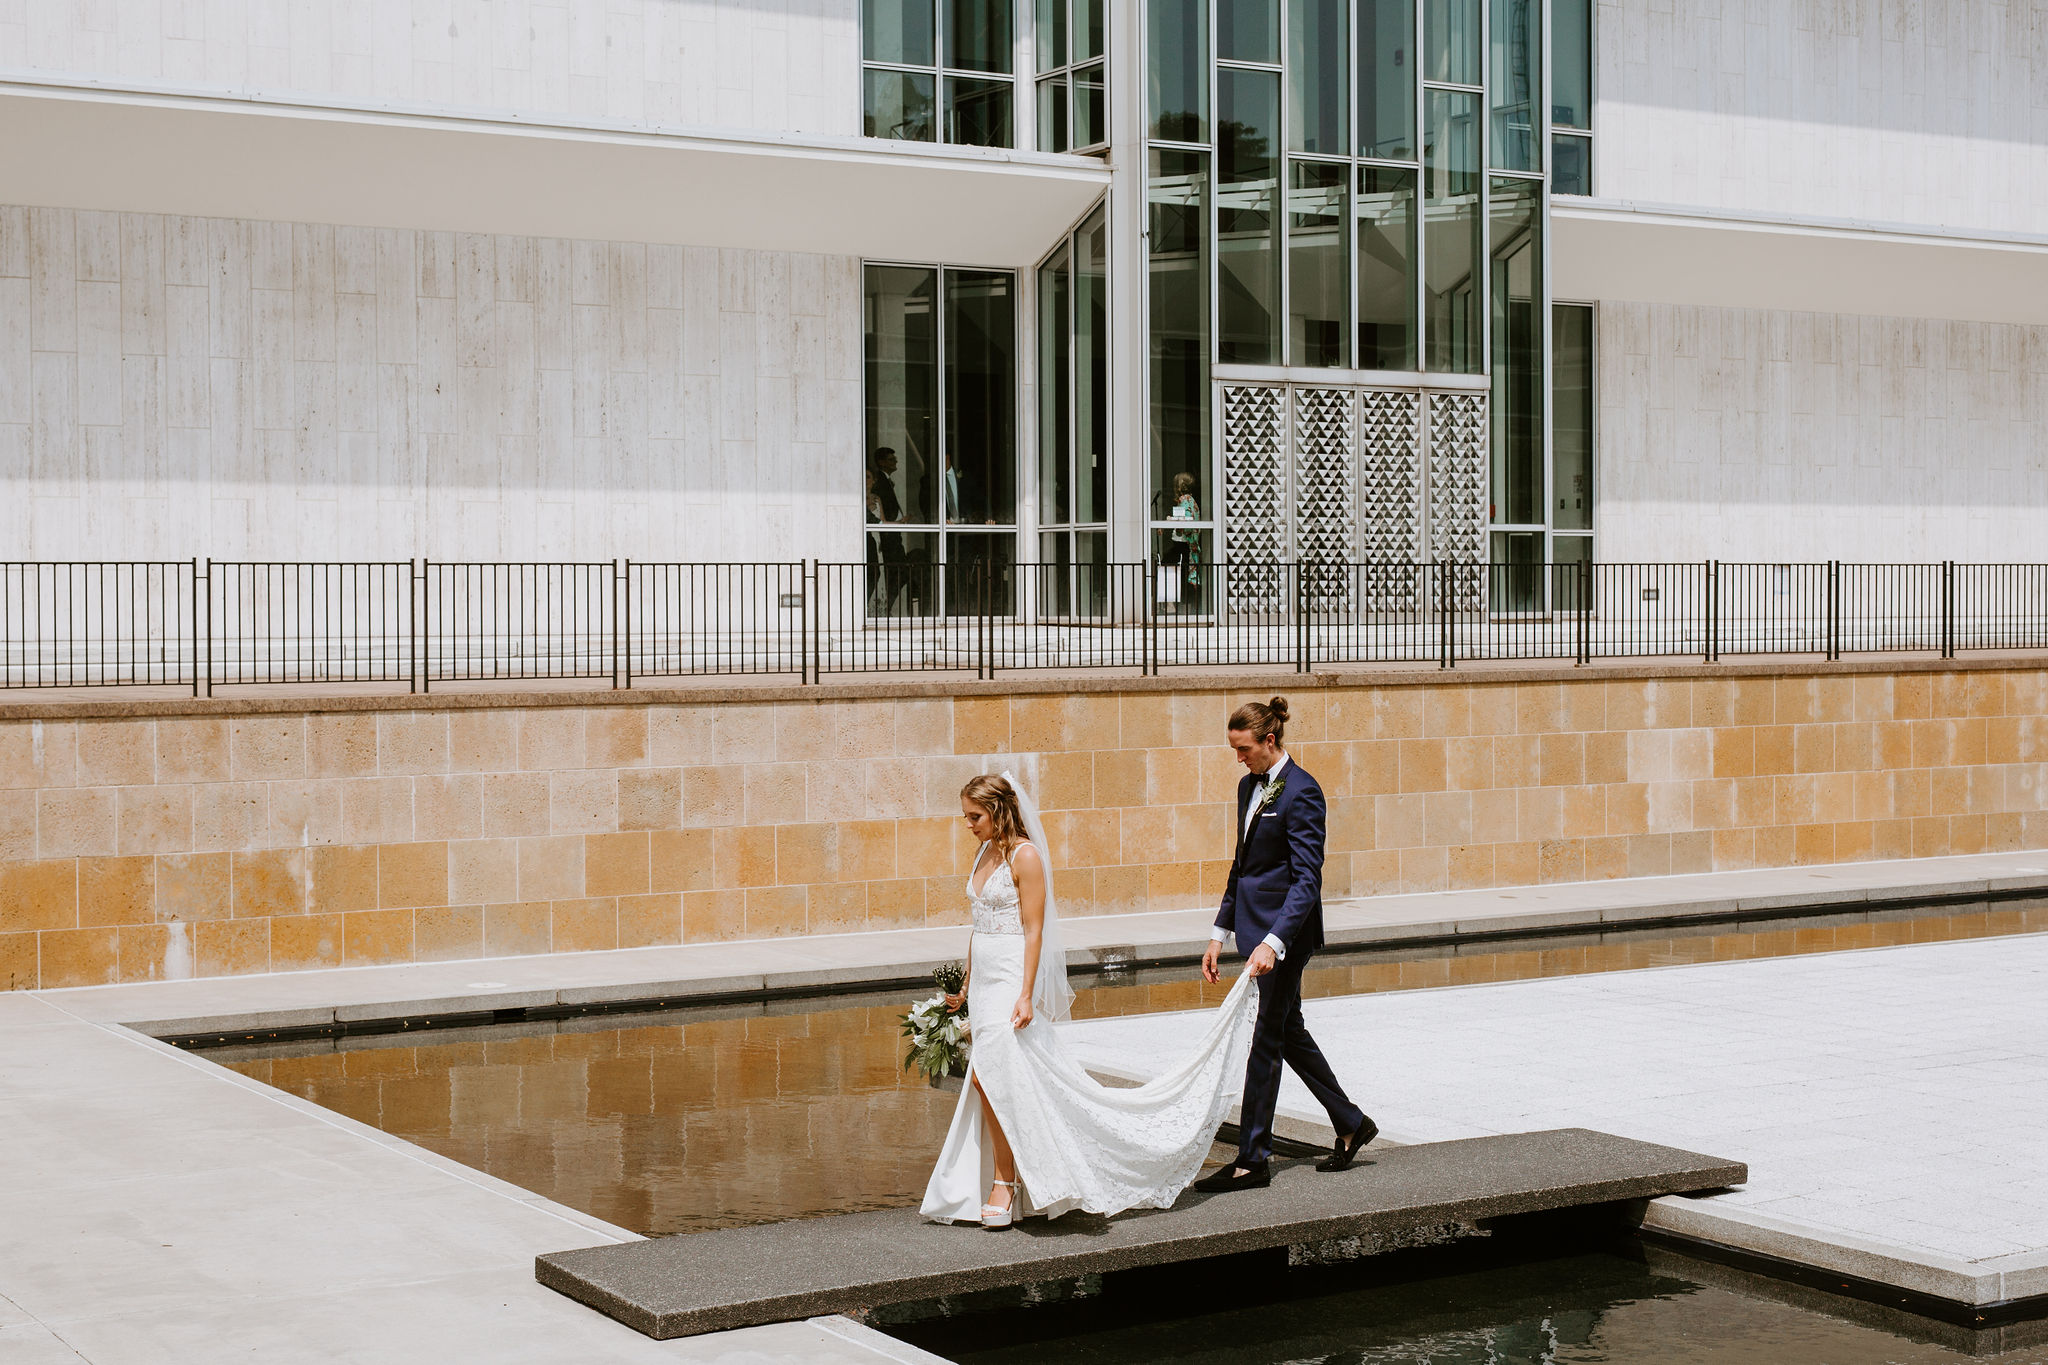 DetroitIndustrialWedding_Geoff&LyndsiPhotography_Alex&Jen_FirstLook44.jpg